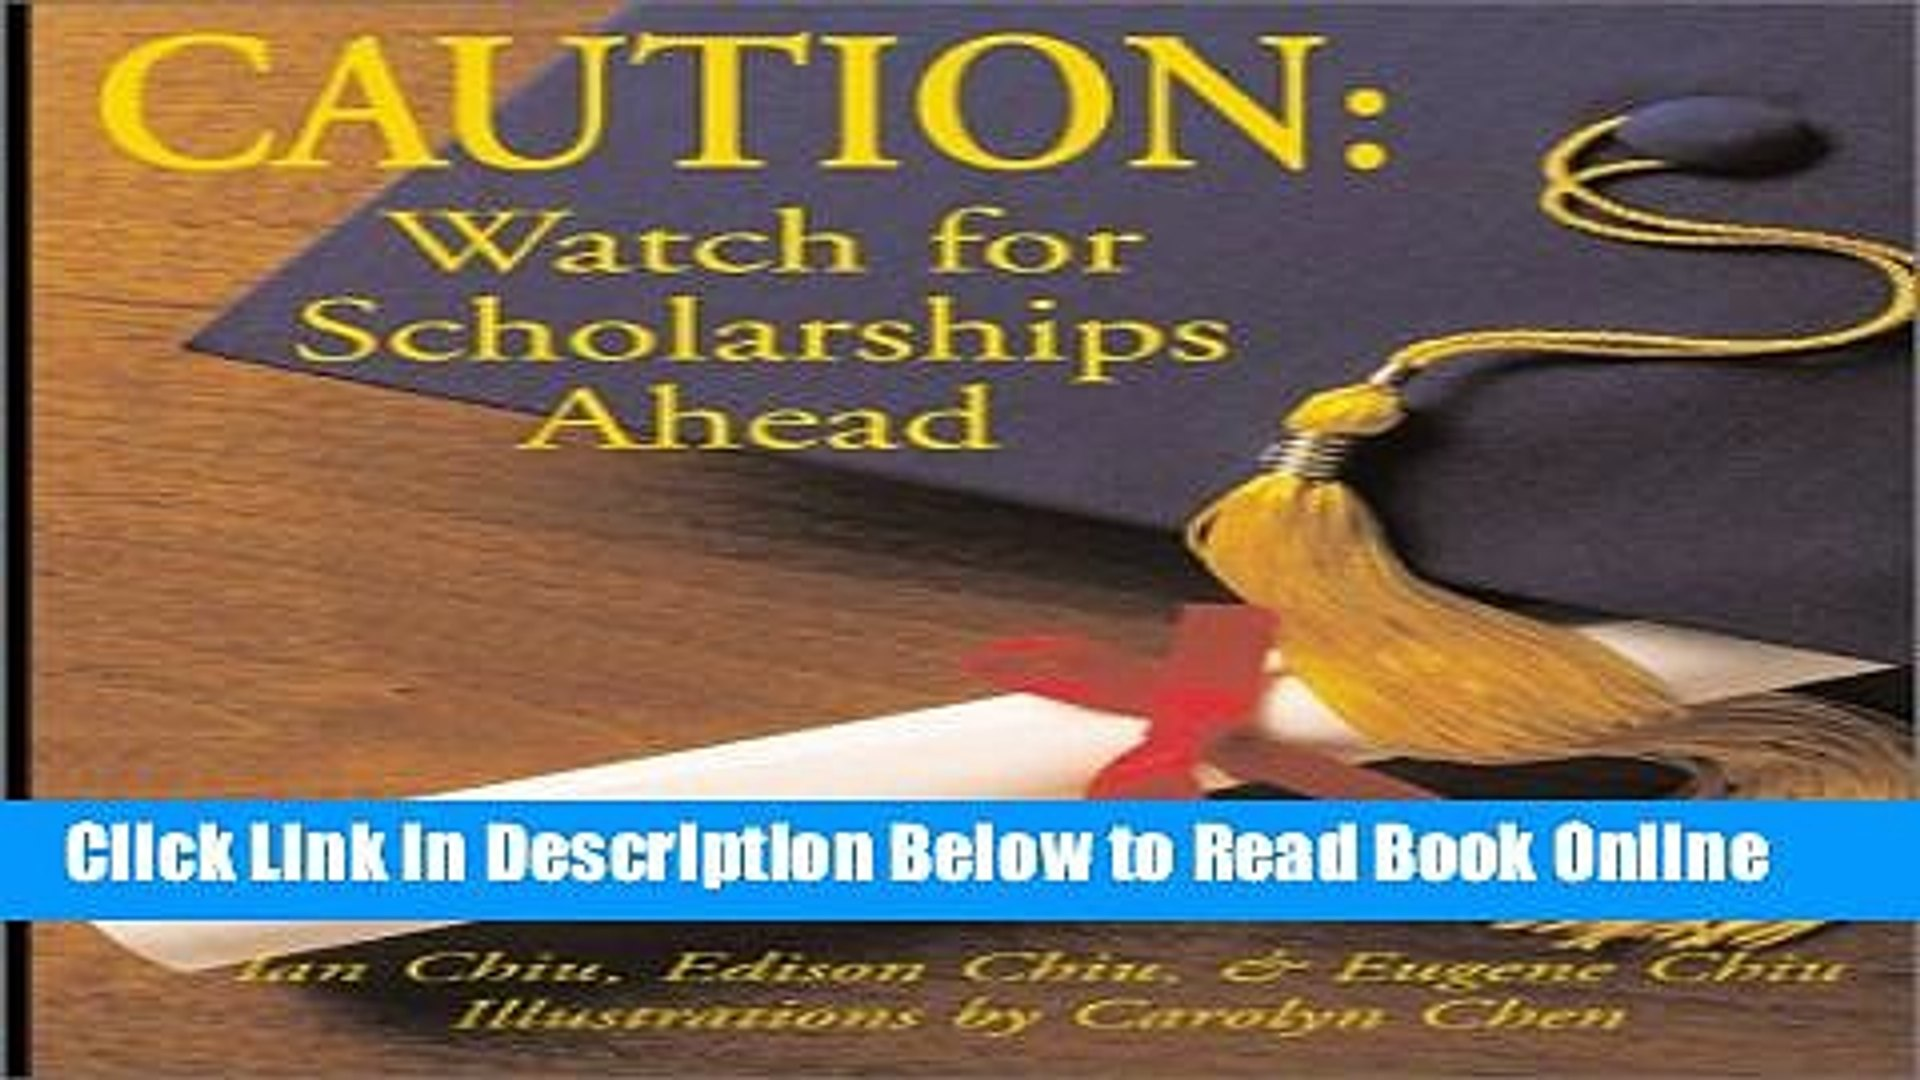 Download Caution: Watch for Scholarships Ahead: How to Apply for Scholarships...from a Student s